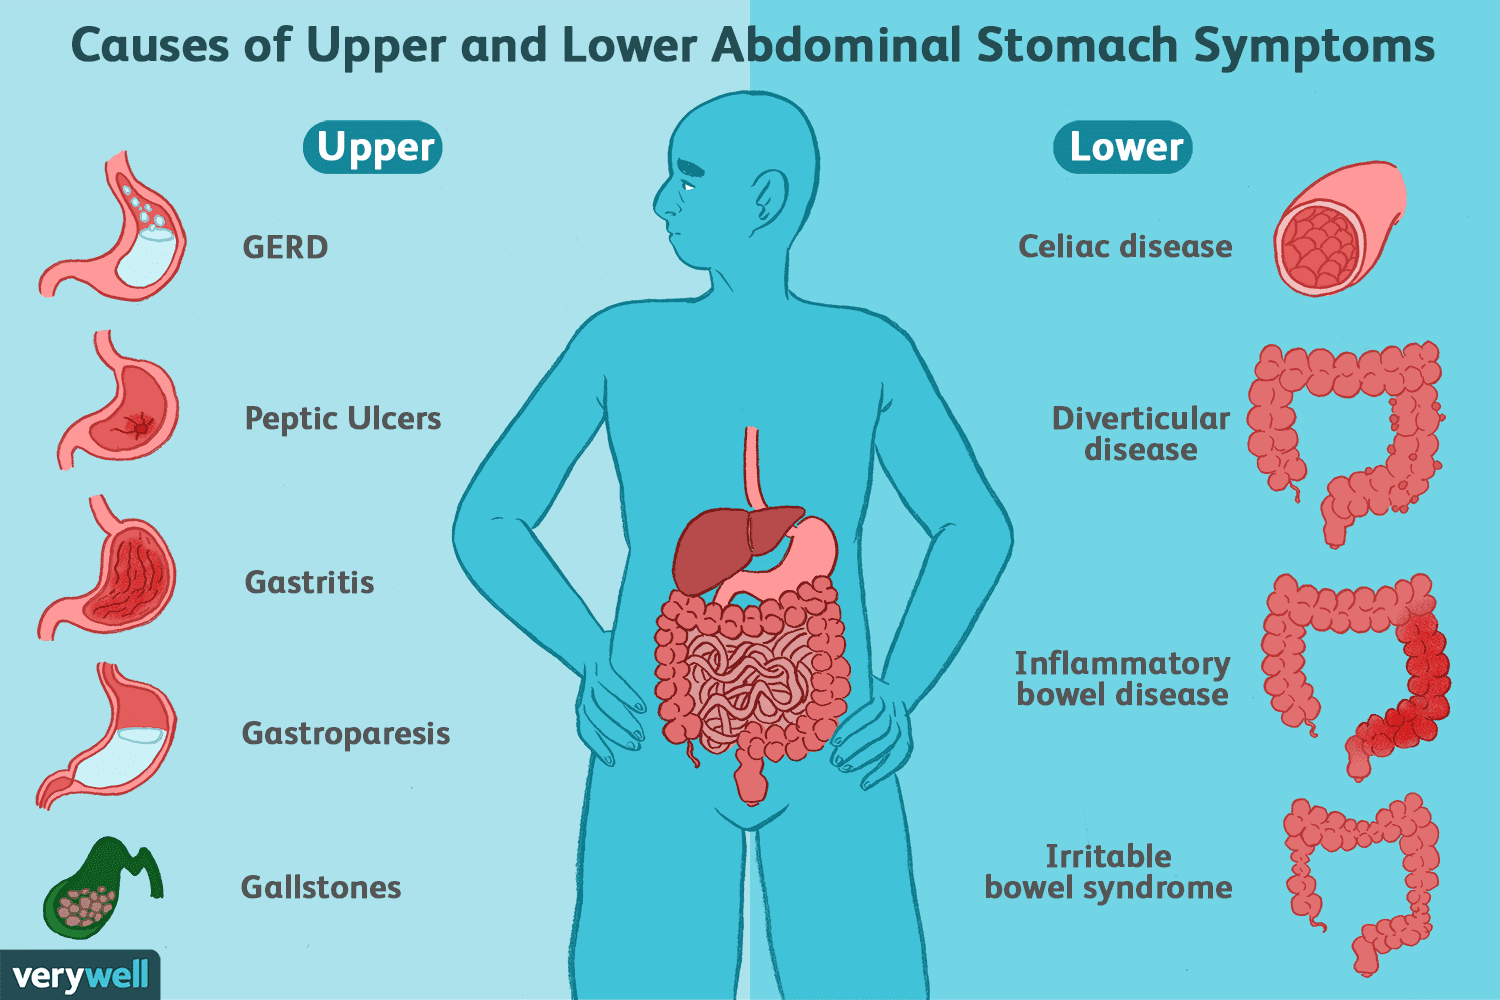 upper and lower abdominal stomach symptoms causes